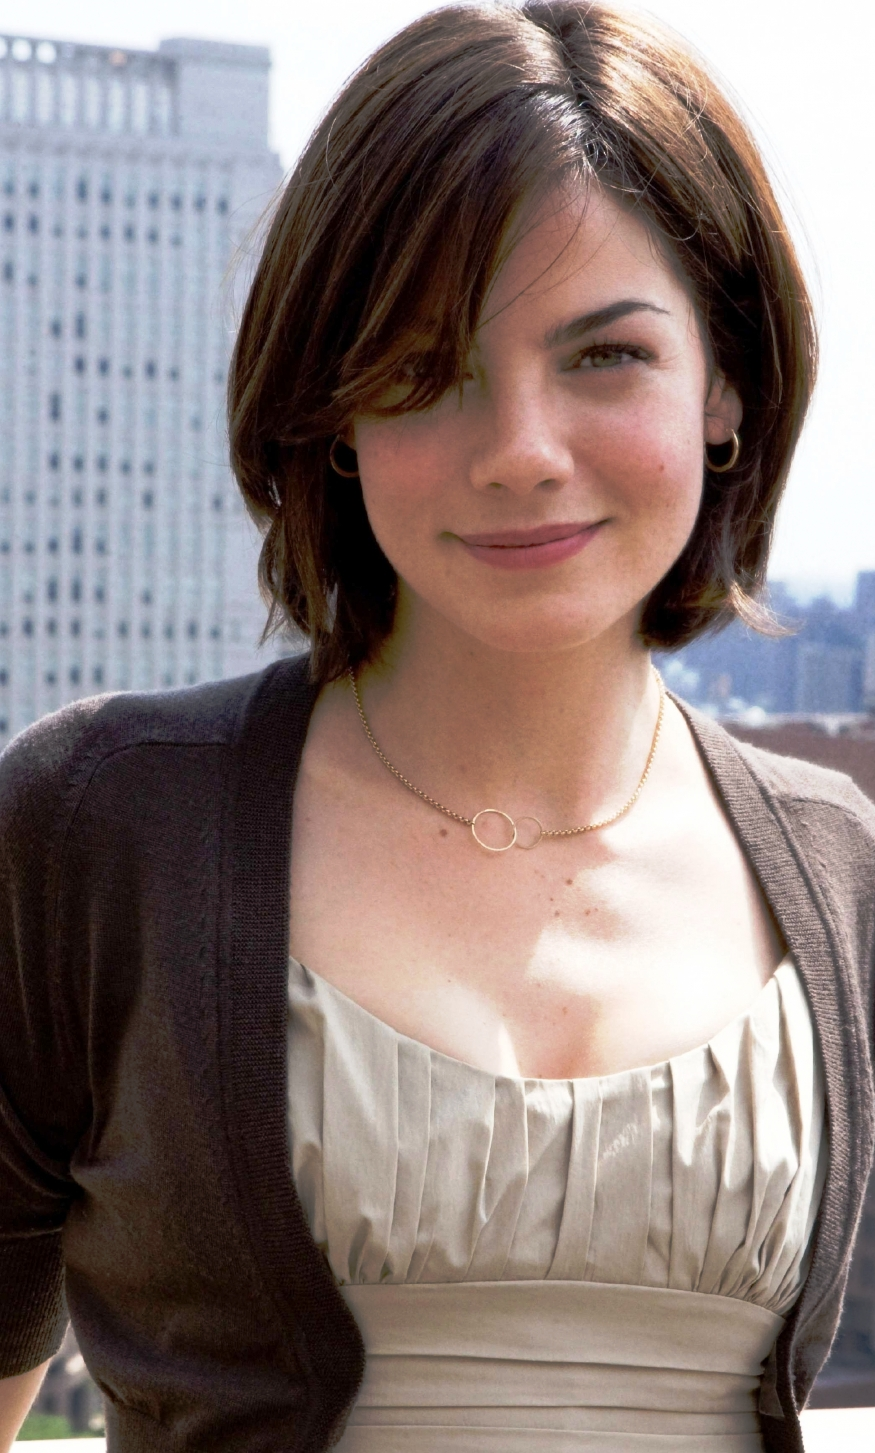 The Latest Celebrity Picture: Michelle Monaghan